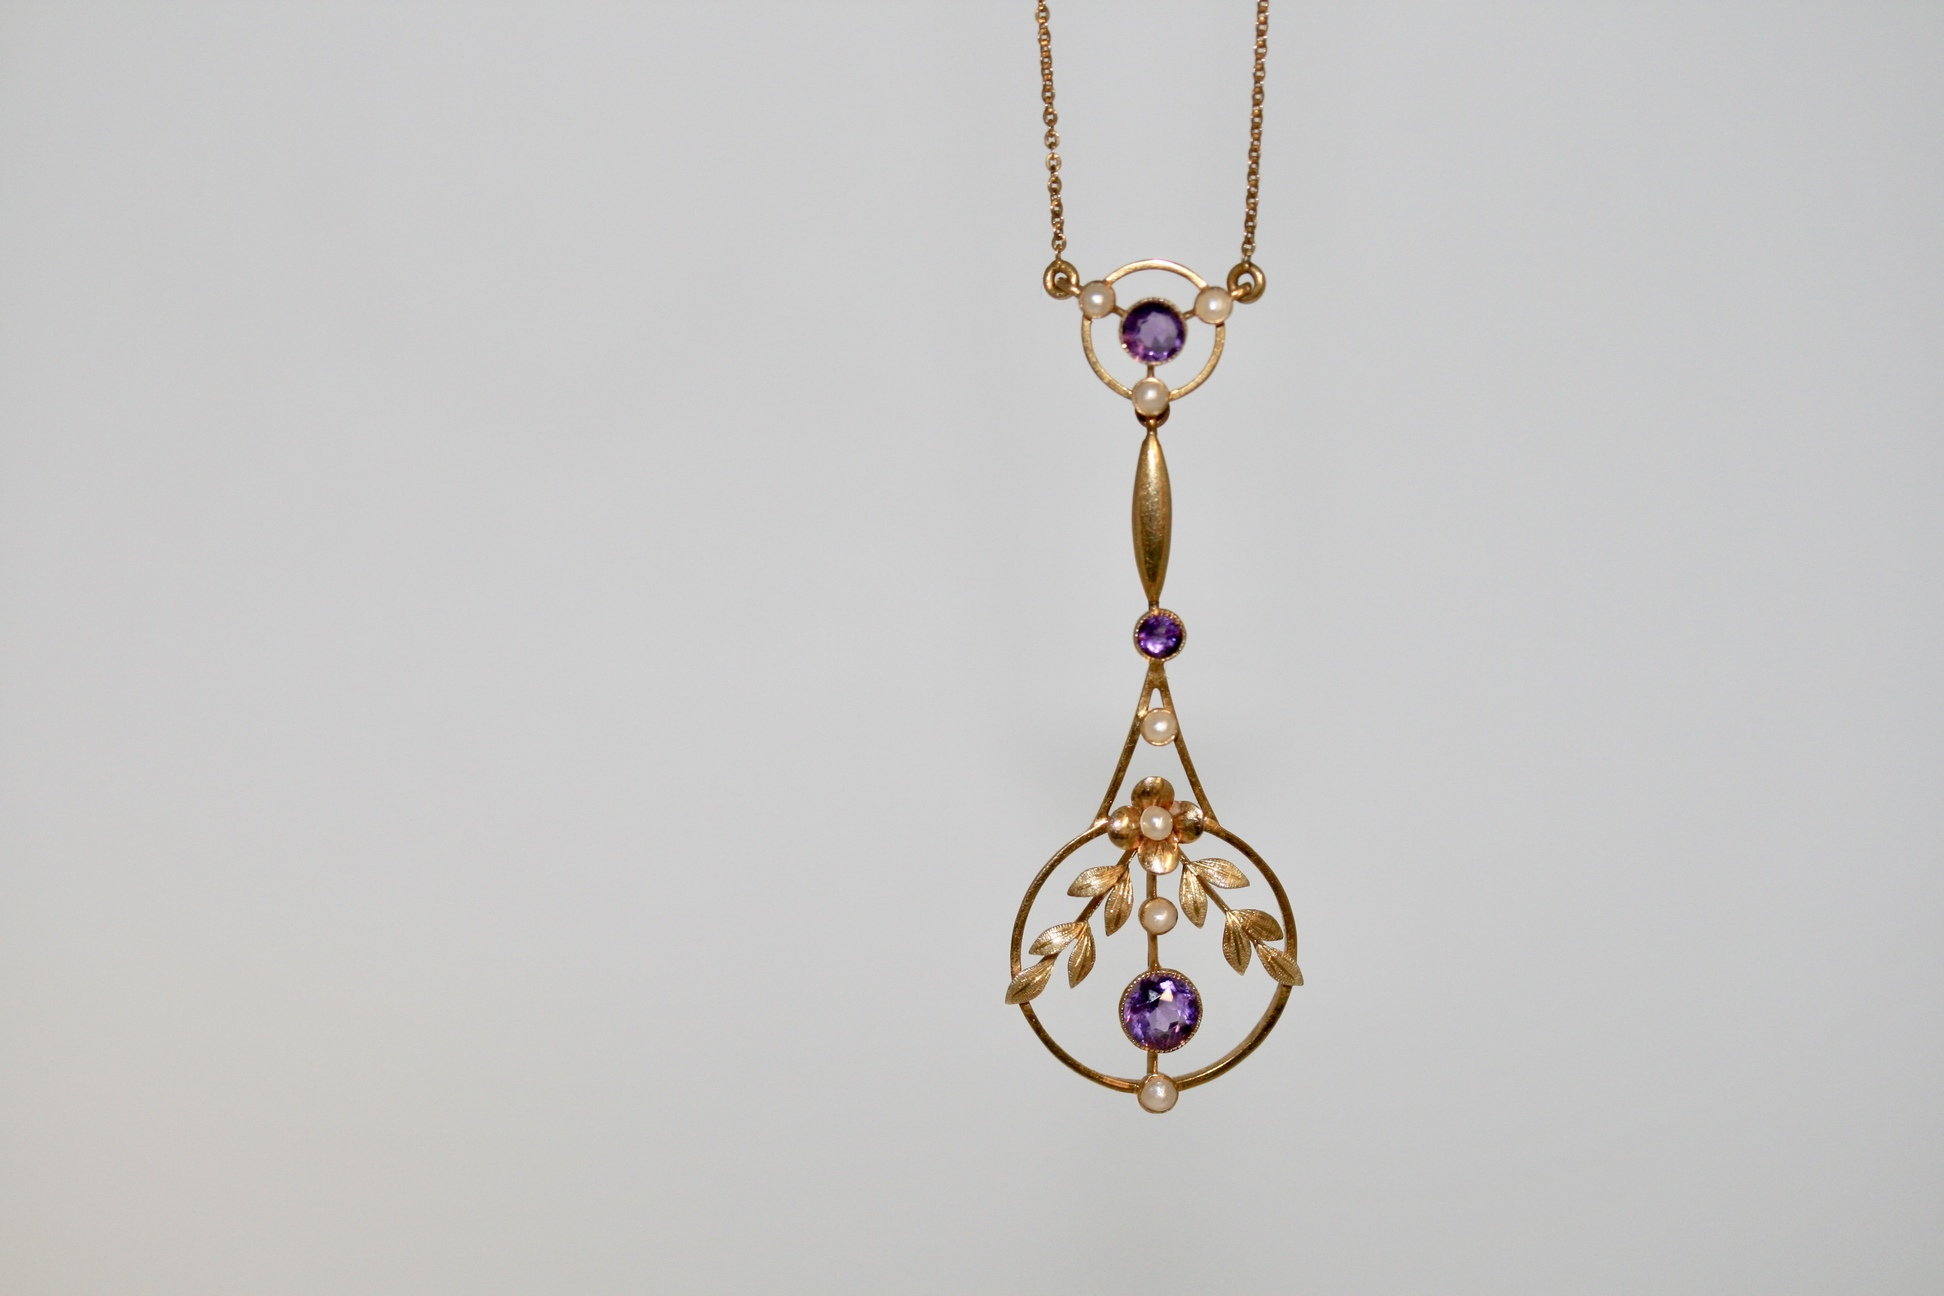 Belle Epoque Amethyst And Pearl Lavalier Necklace, Circa 1900